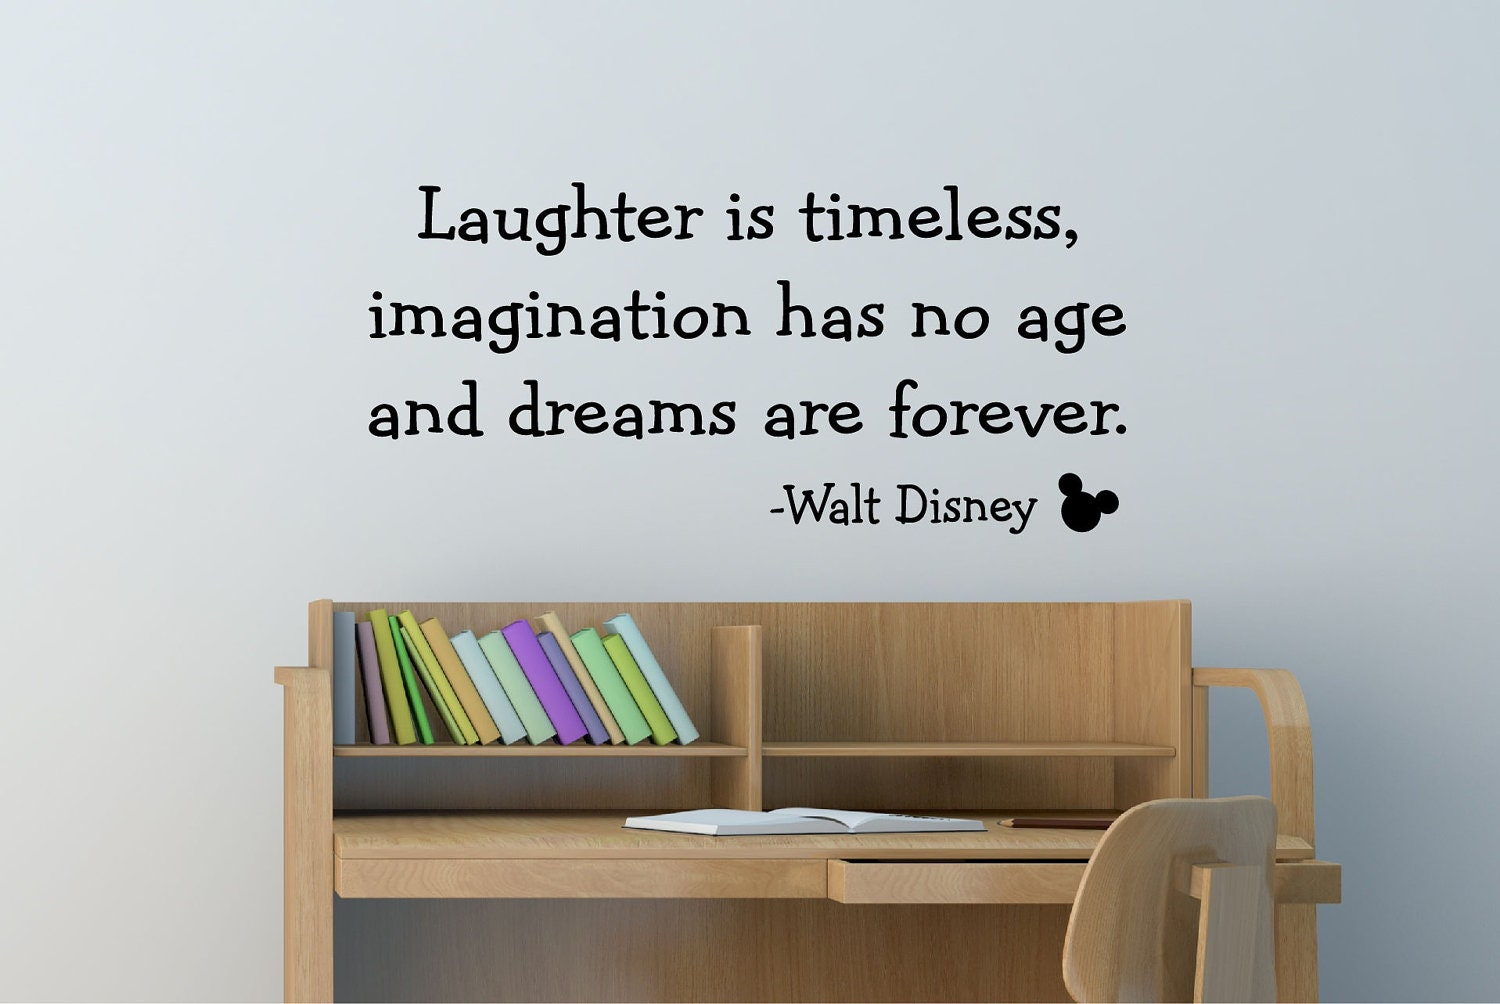 Disney wall decals quotes etsy color the walls of your house disney wall decals quotes etsy walt disney quote decal vinyl decal wall decal wall amipublicfo Choice Image